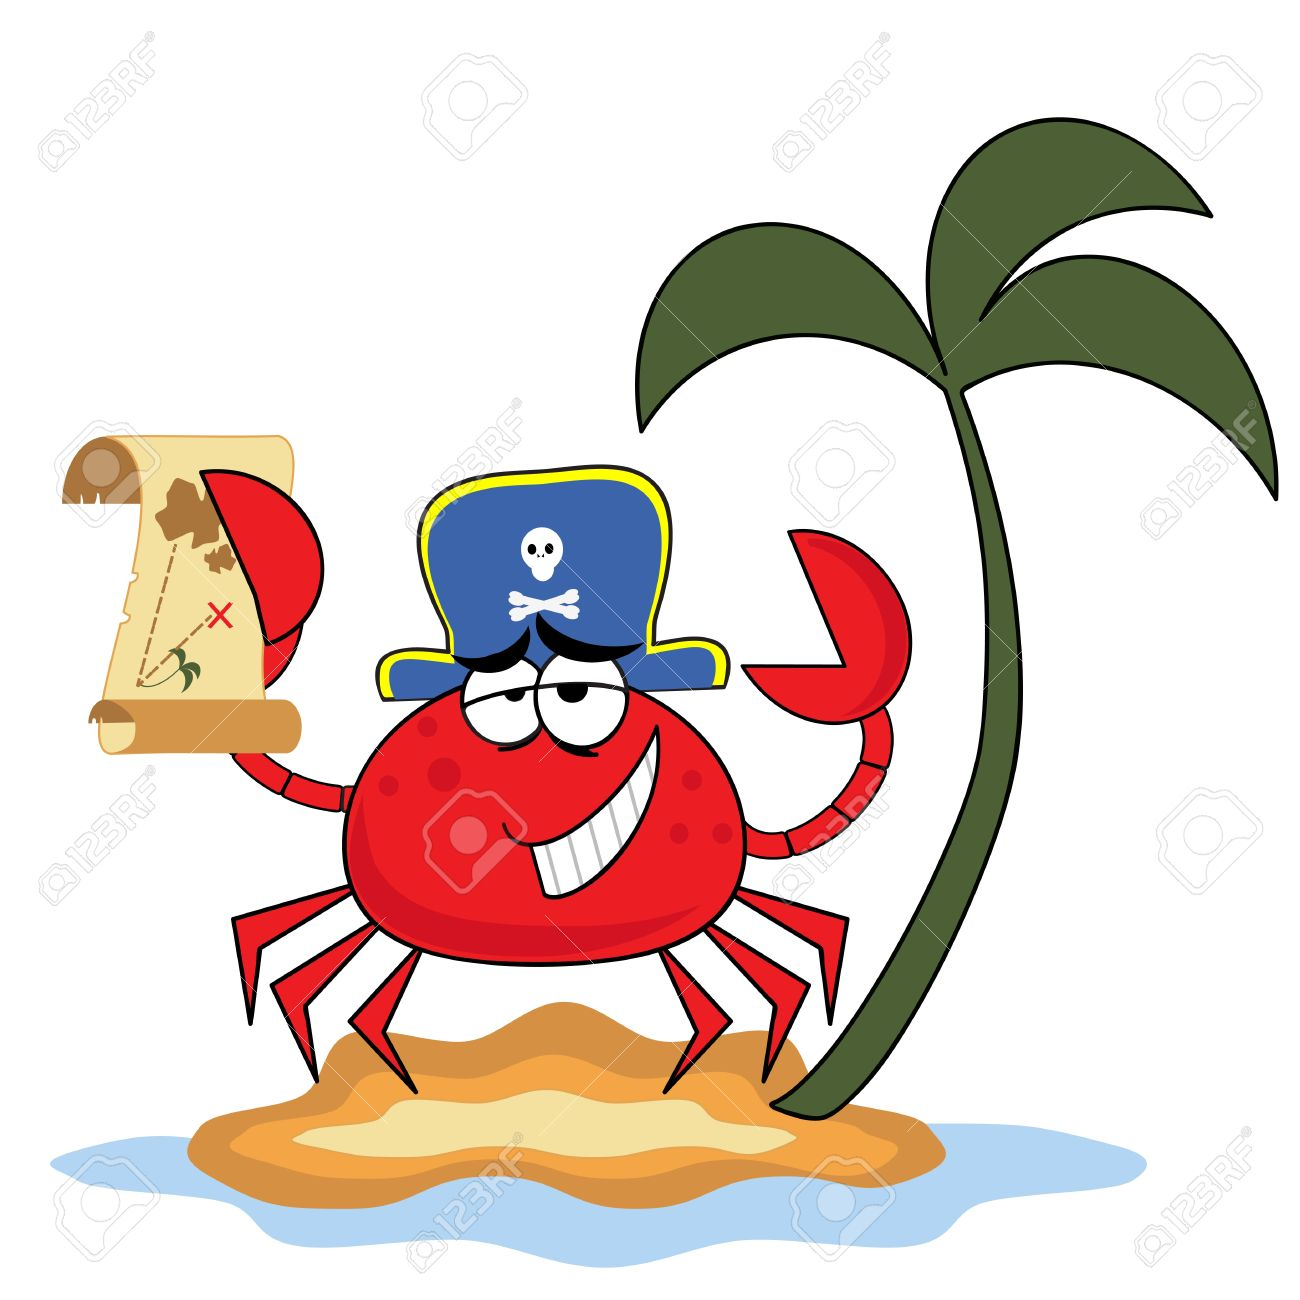 crab pirate royalty free cliparts vectors and stock illustration